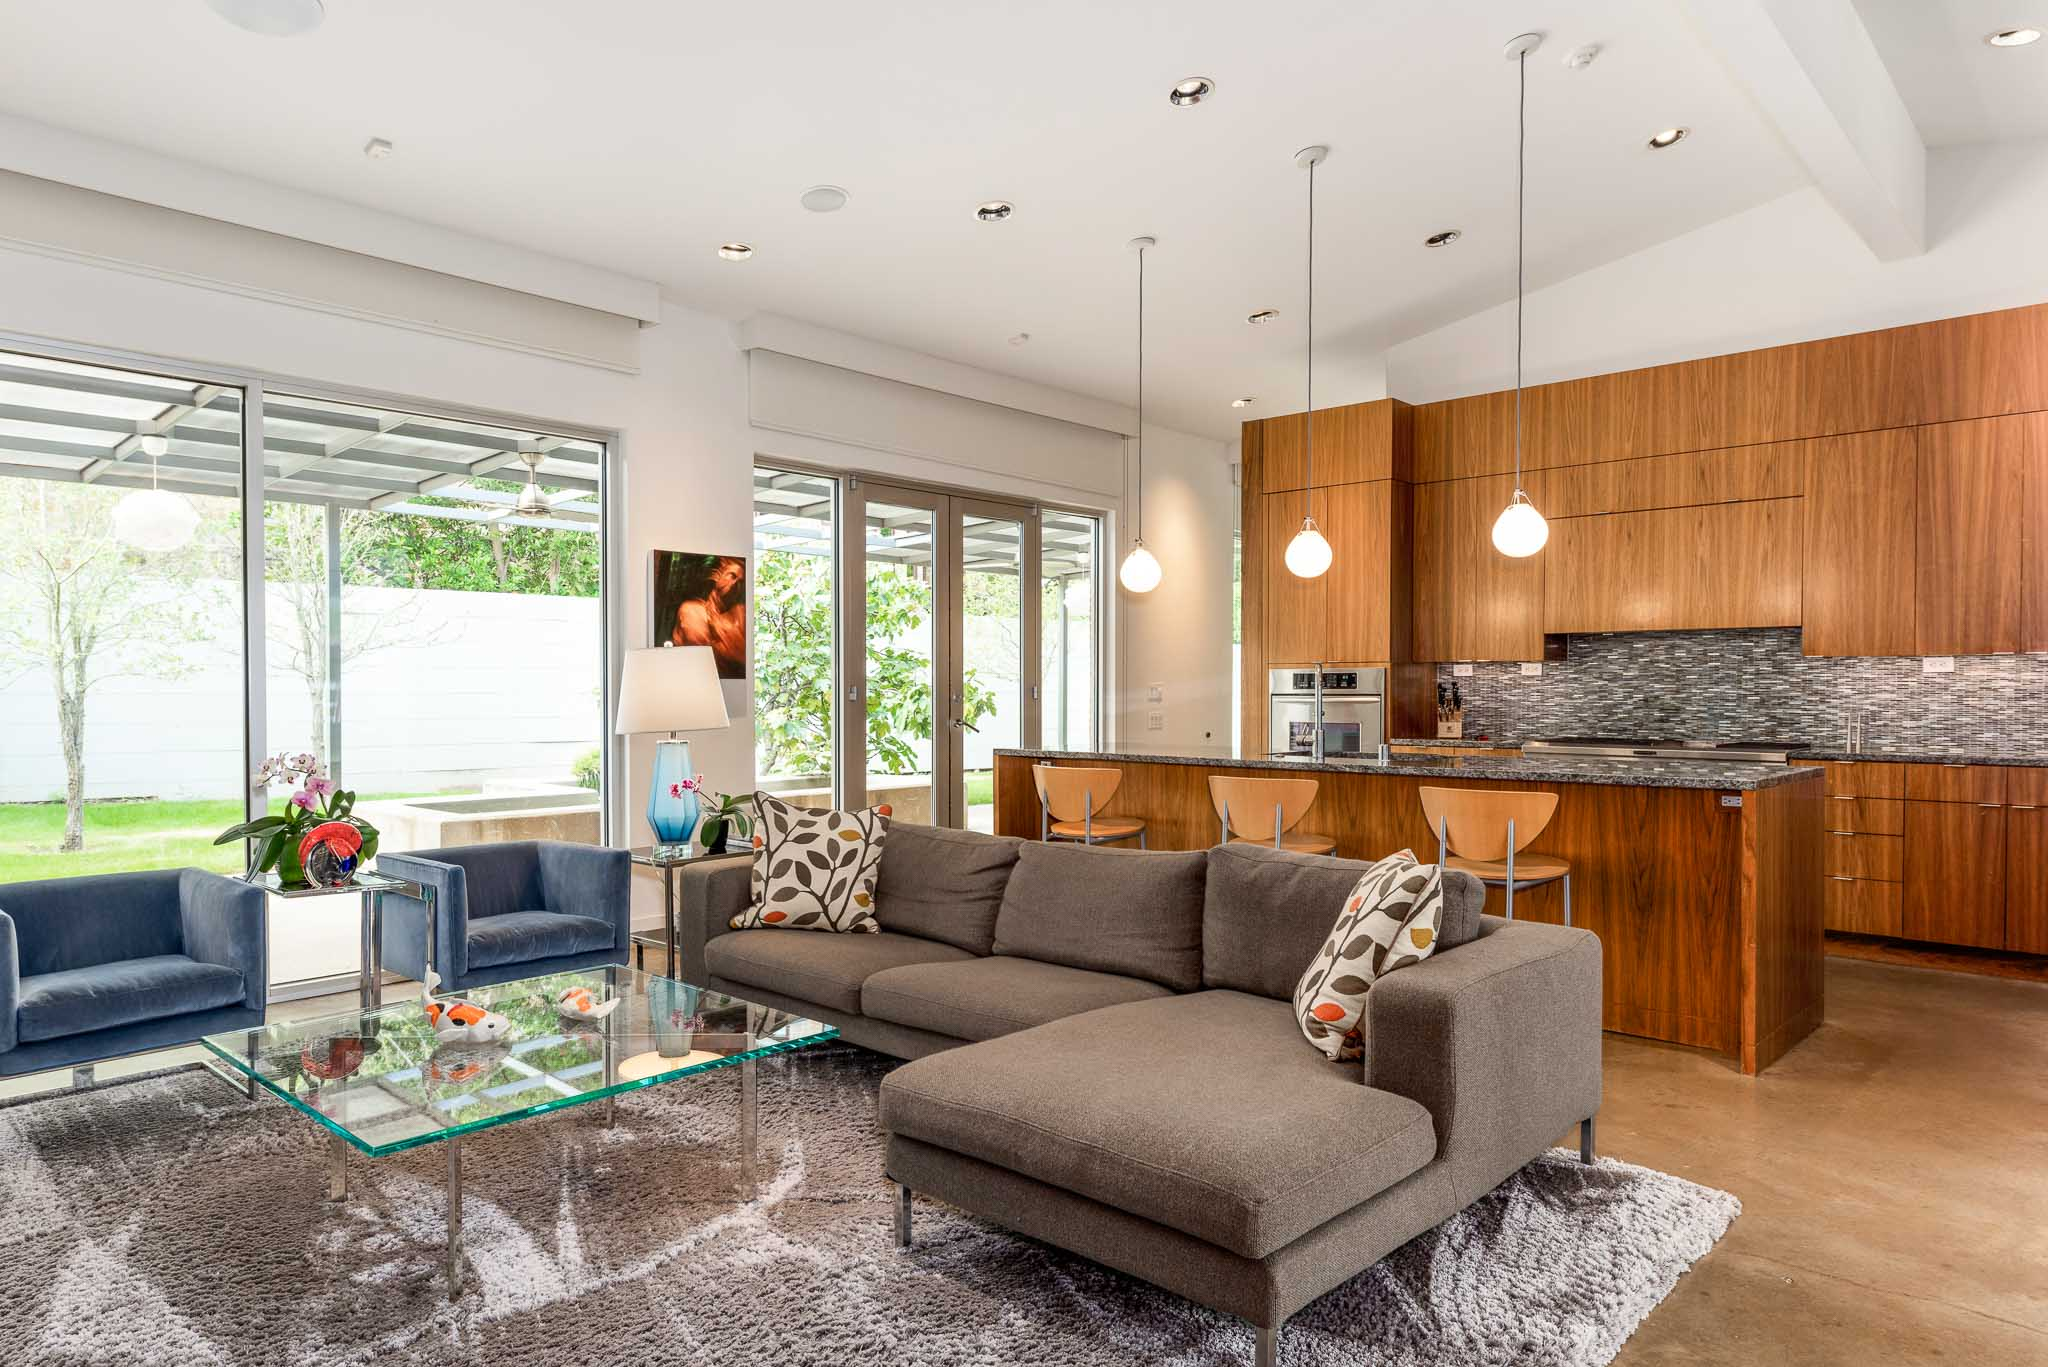 Living room in Oak Cliff home designed by renowned architect